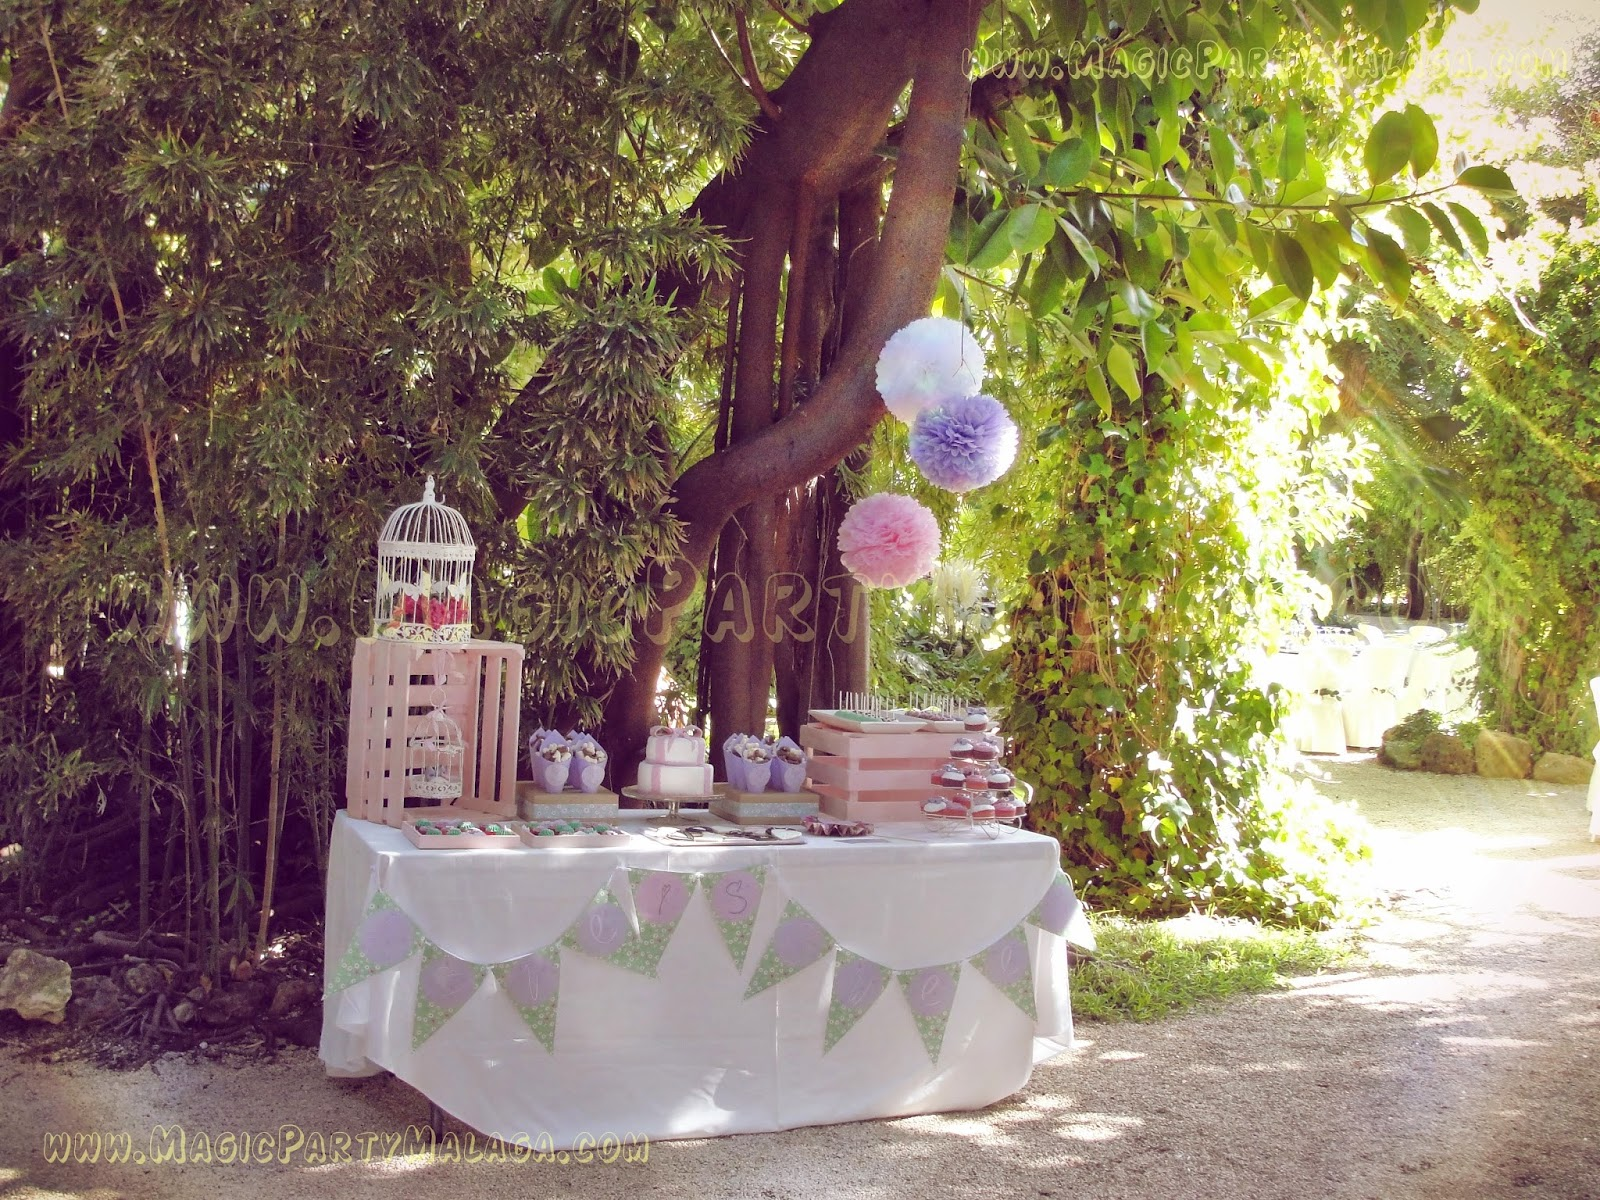 Magic party boda d m mesa dulce campestre vintage - Estilo en rosa ...